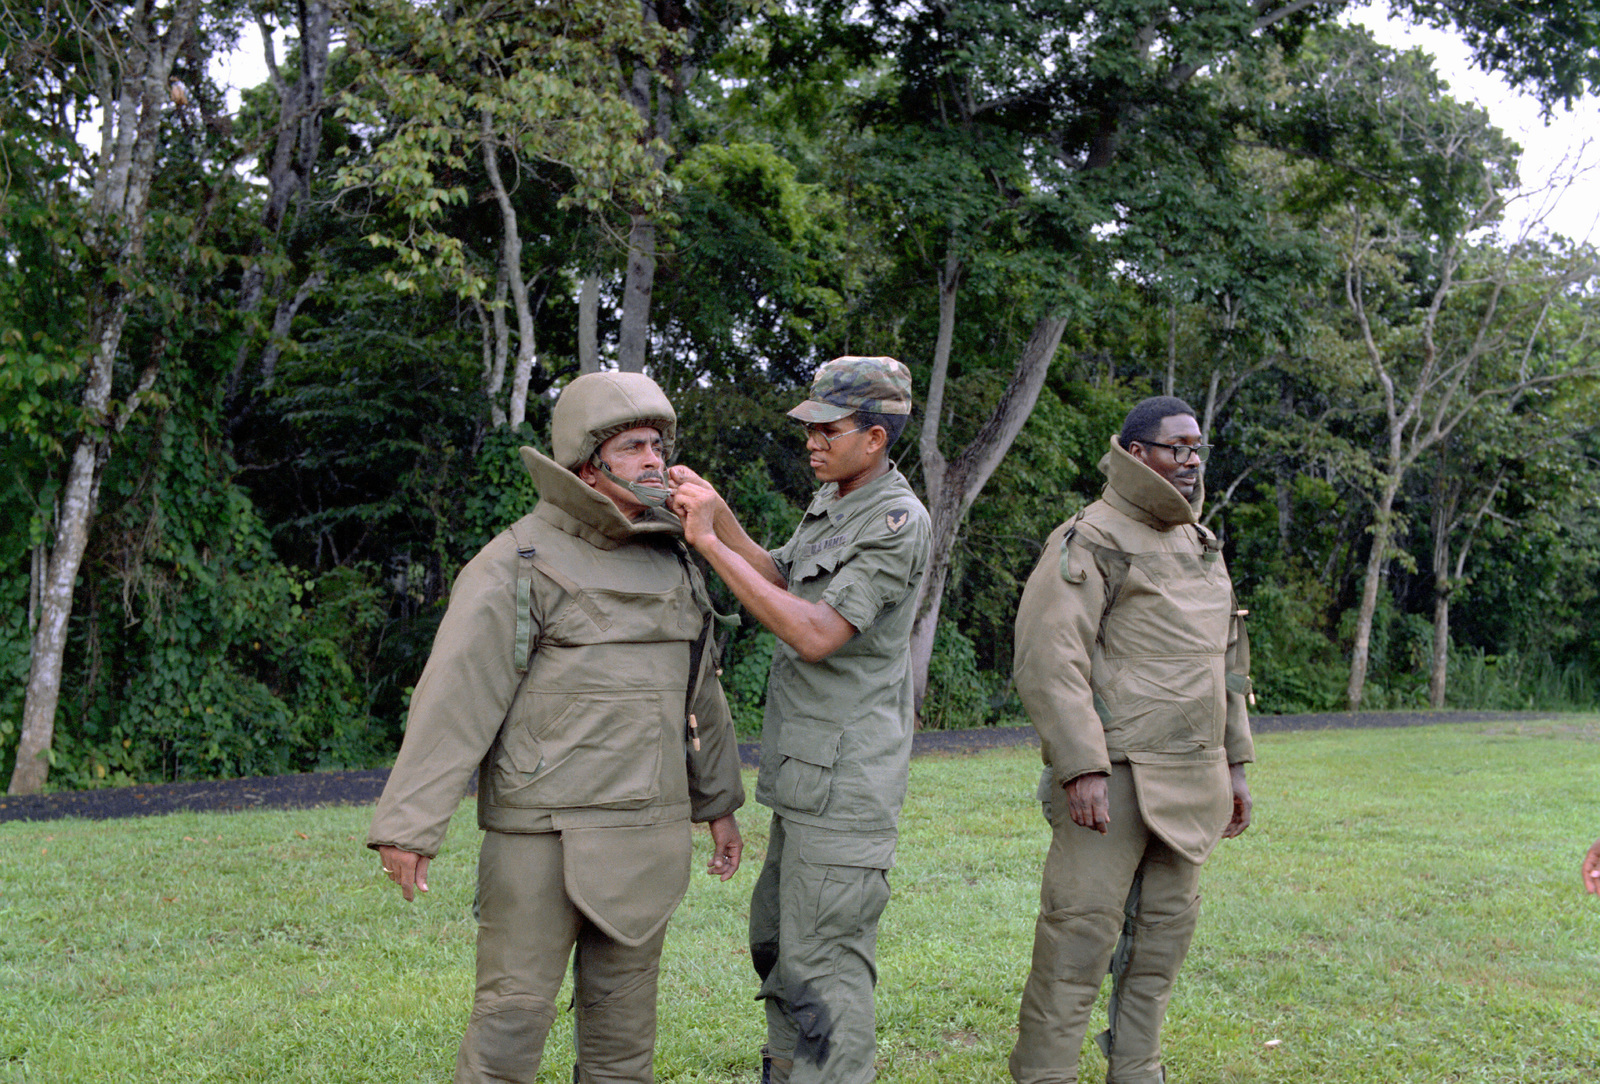 SPECIALIST Fourth Class Brown assists Sergeant First Class Matilde Almendarez in donning body armor to be used by explosive ordnance disposal units to test its effectiveness after eight months of storage in the tropics. STAFF Sergeant Milus Reeves is also wearing the two-piece suit which is constructed of Kevlar and Nomex fabrics